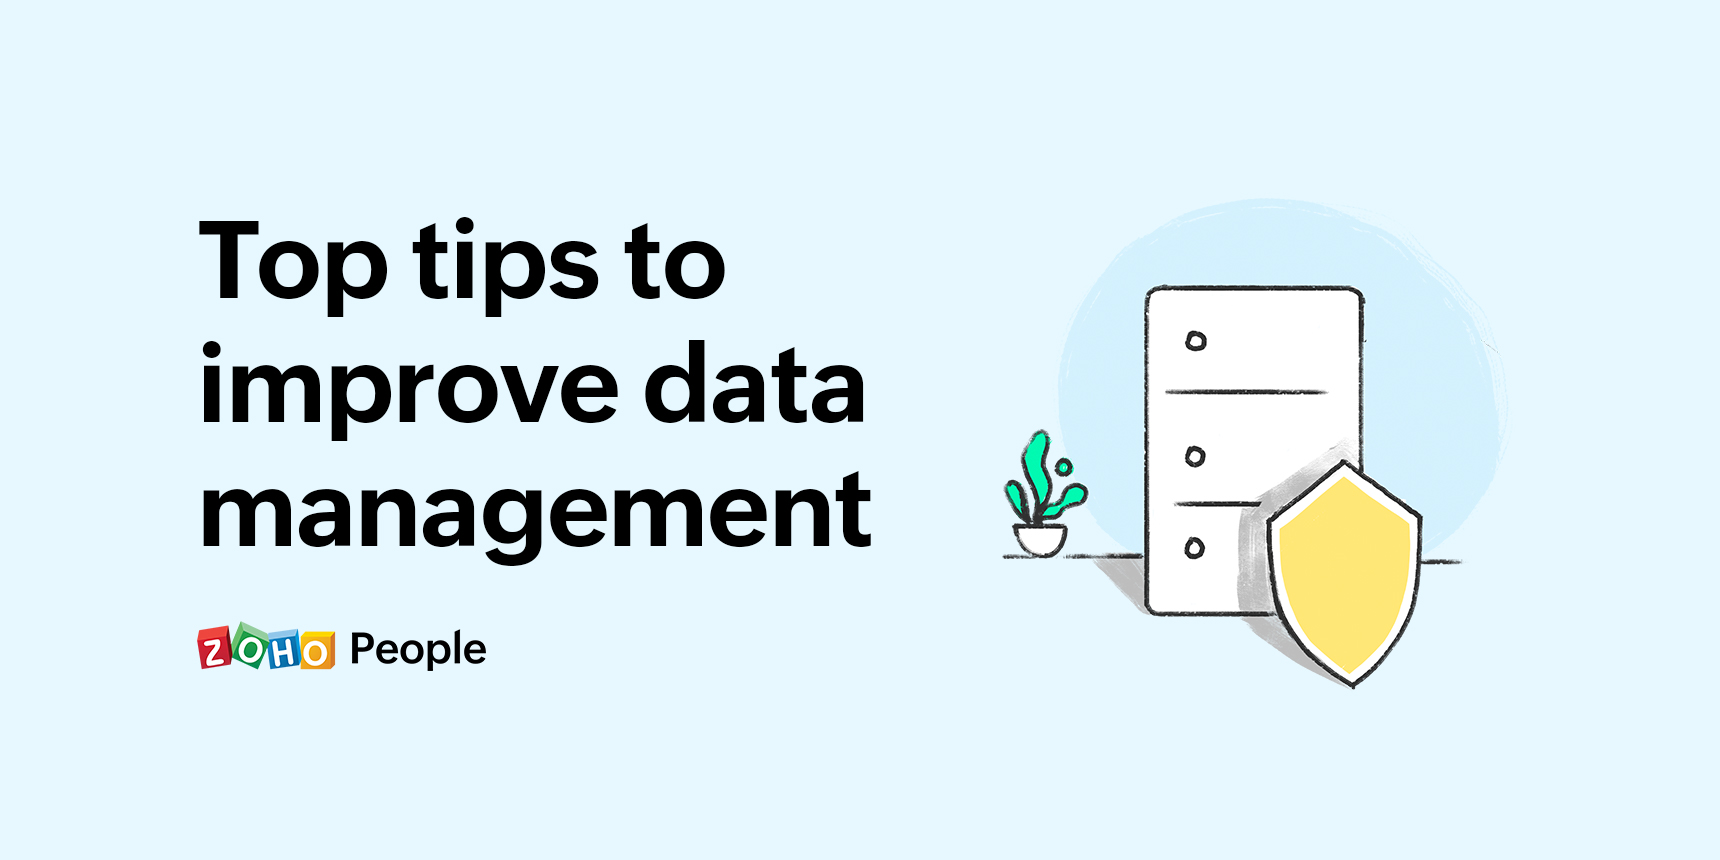 Top tips to improve data management - Data privacy